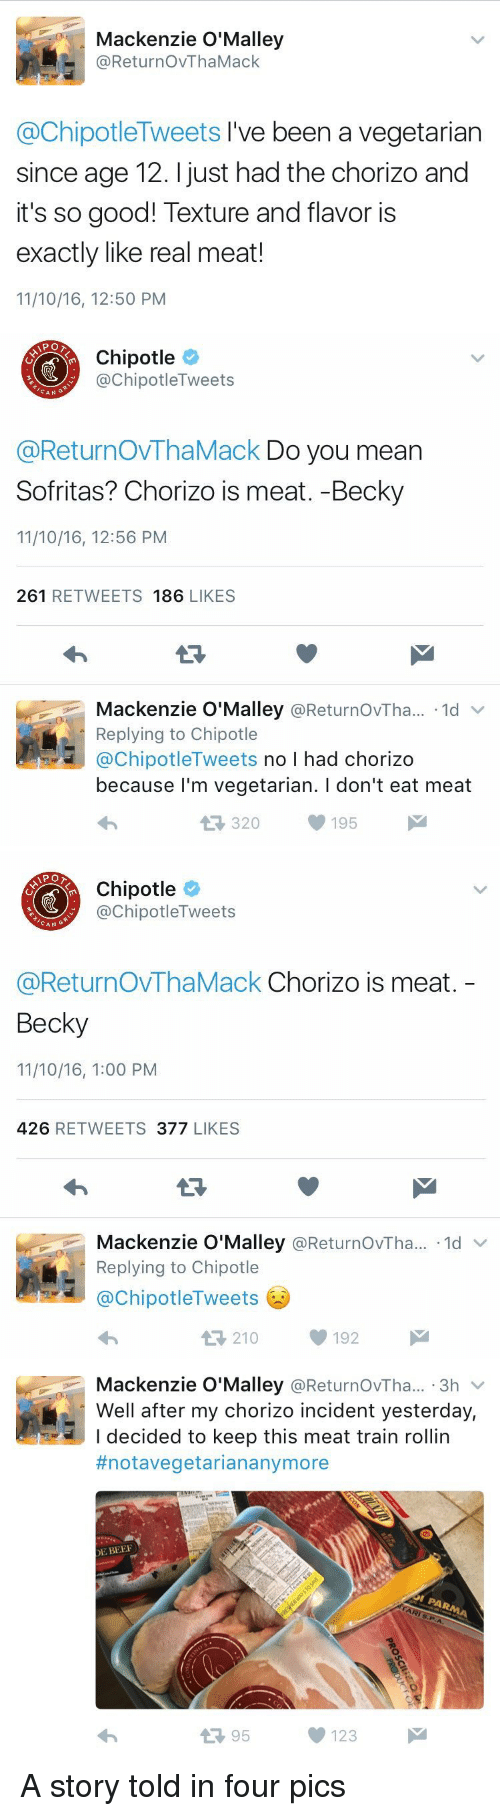 eating meat: Mackenzie O'Malley  @ReturnovThaMack  @Chipotle Tweets I've been a vegetarian  since age 12. just had the chorizo and  it's so good! Texture and flavor is  exactly like real meat!  11/10/16, 12:50 PM   Chipotle  Tweets  nipotle CAN  @ReturnovThaMack Do you mean  Sofritas? Chorizo is meat. -Becky  11/10/16, 12:56 PM  261  RETWEETS 186  LIKES  Mackenzie O'Malley  @ReturnovTha... 1d  v  Replying to Chipotle  @Chipotle Tweets  no I had chorizo  because I'm vegetarian. l don't eat meat  195  M  320   Chipotle  ChipotleTweets  CAN  G  @ReturnovThaMack Chorizo is meat  Becky  11/10/16, 1:00 PM  426  RETWEETS  377  LIKES  Mackenzie O'Malley  ReturnovTha... 1d  Replying to Chipotle  @Chipotle Tweets  210  192   Mackenzie O'Malley  ReturnovTha... 3h  V  Well after my chorizo incident yesterday,  I decided to keep this meat train rollin  #notavegetarian anymore  DE BEEF  95  123 A story told in four pics